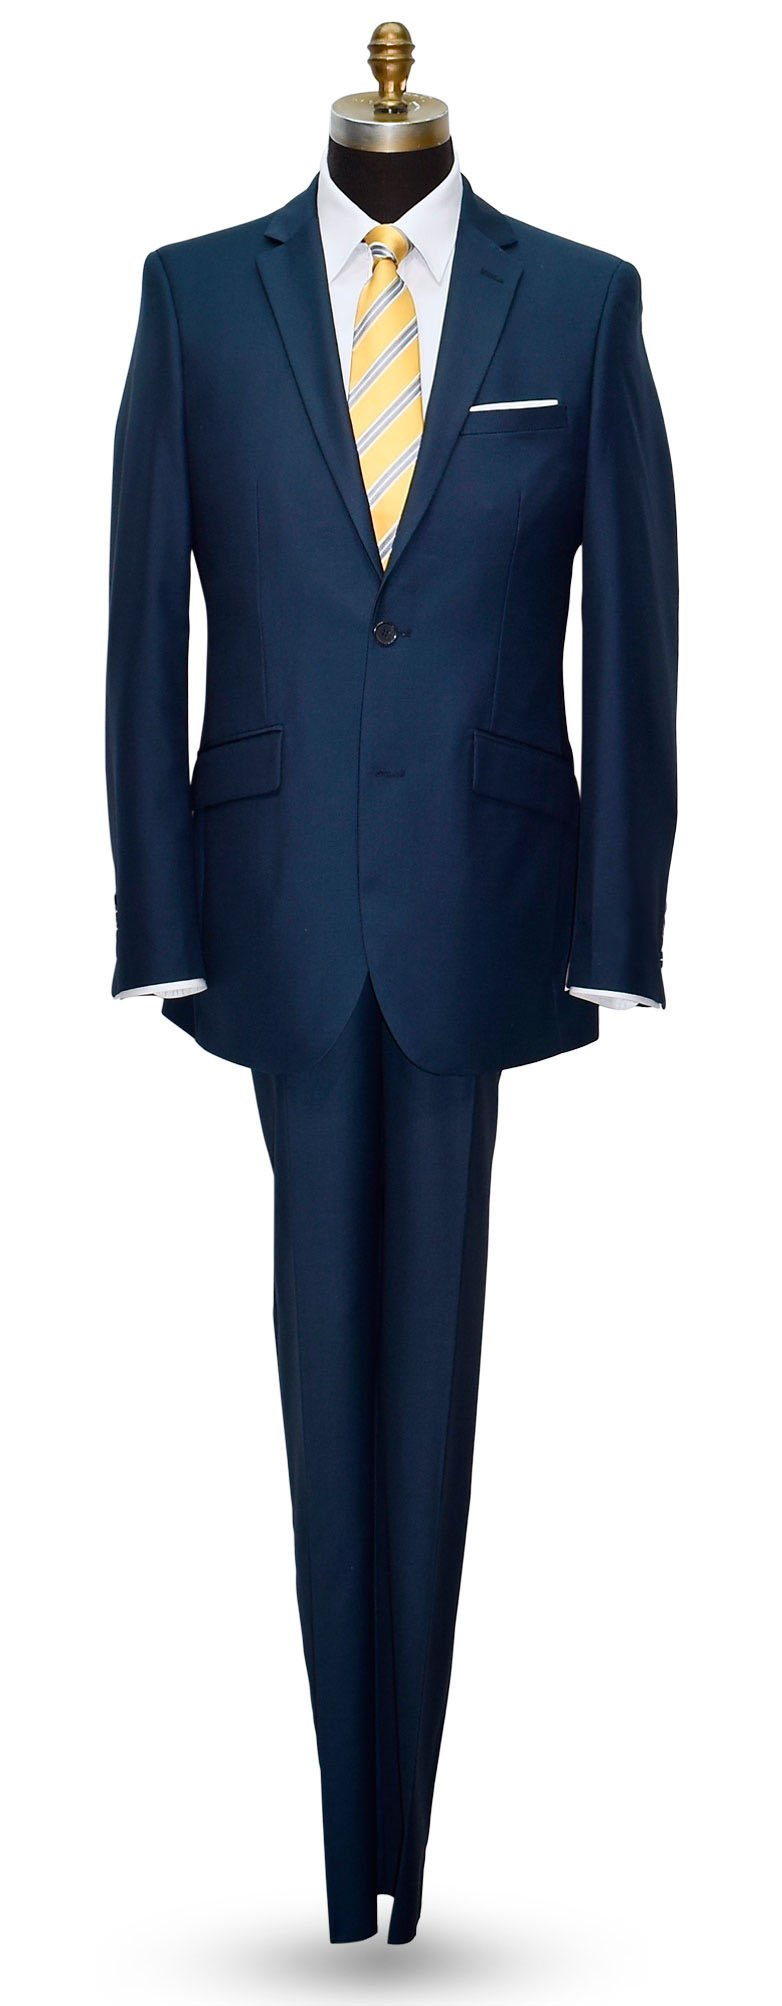 Aqua Marine Blue Mens 2 Piece Slim Fit Suit